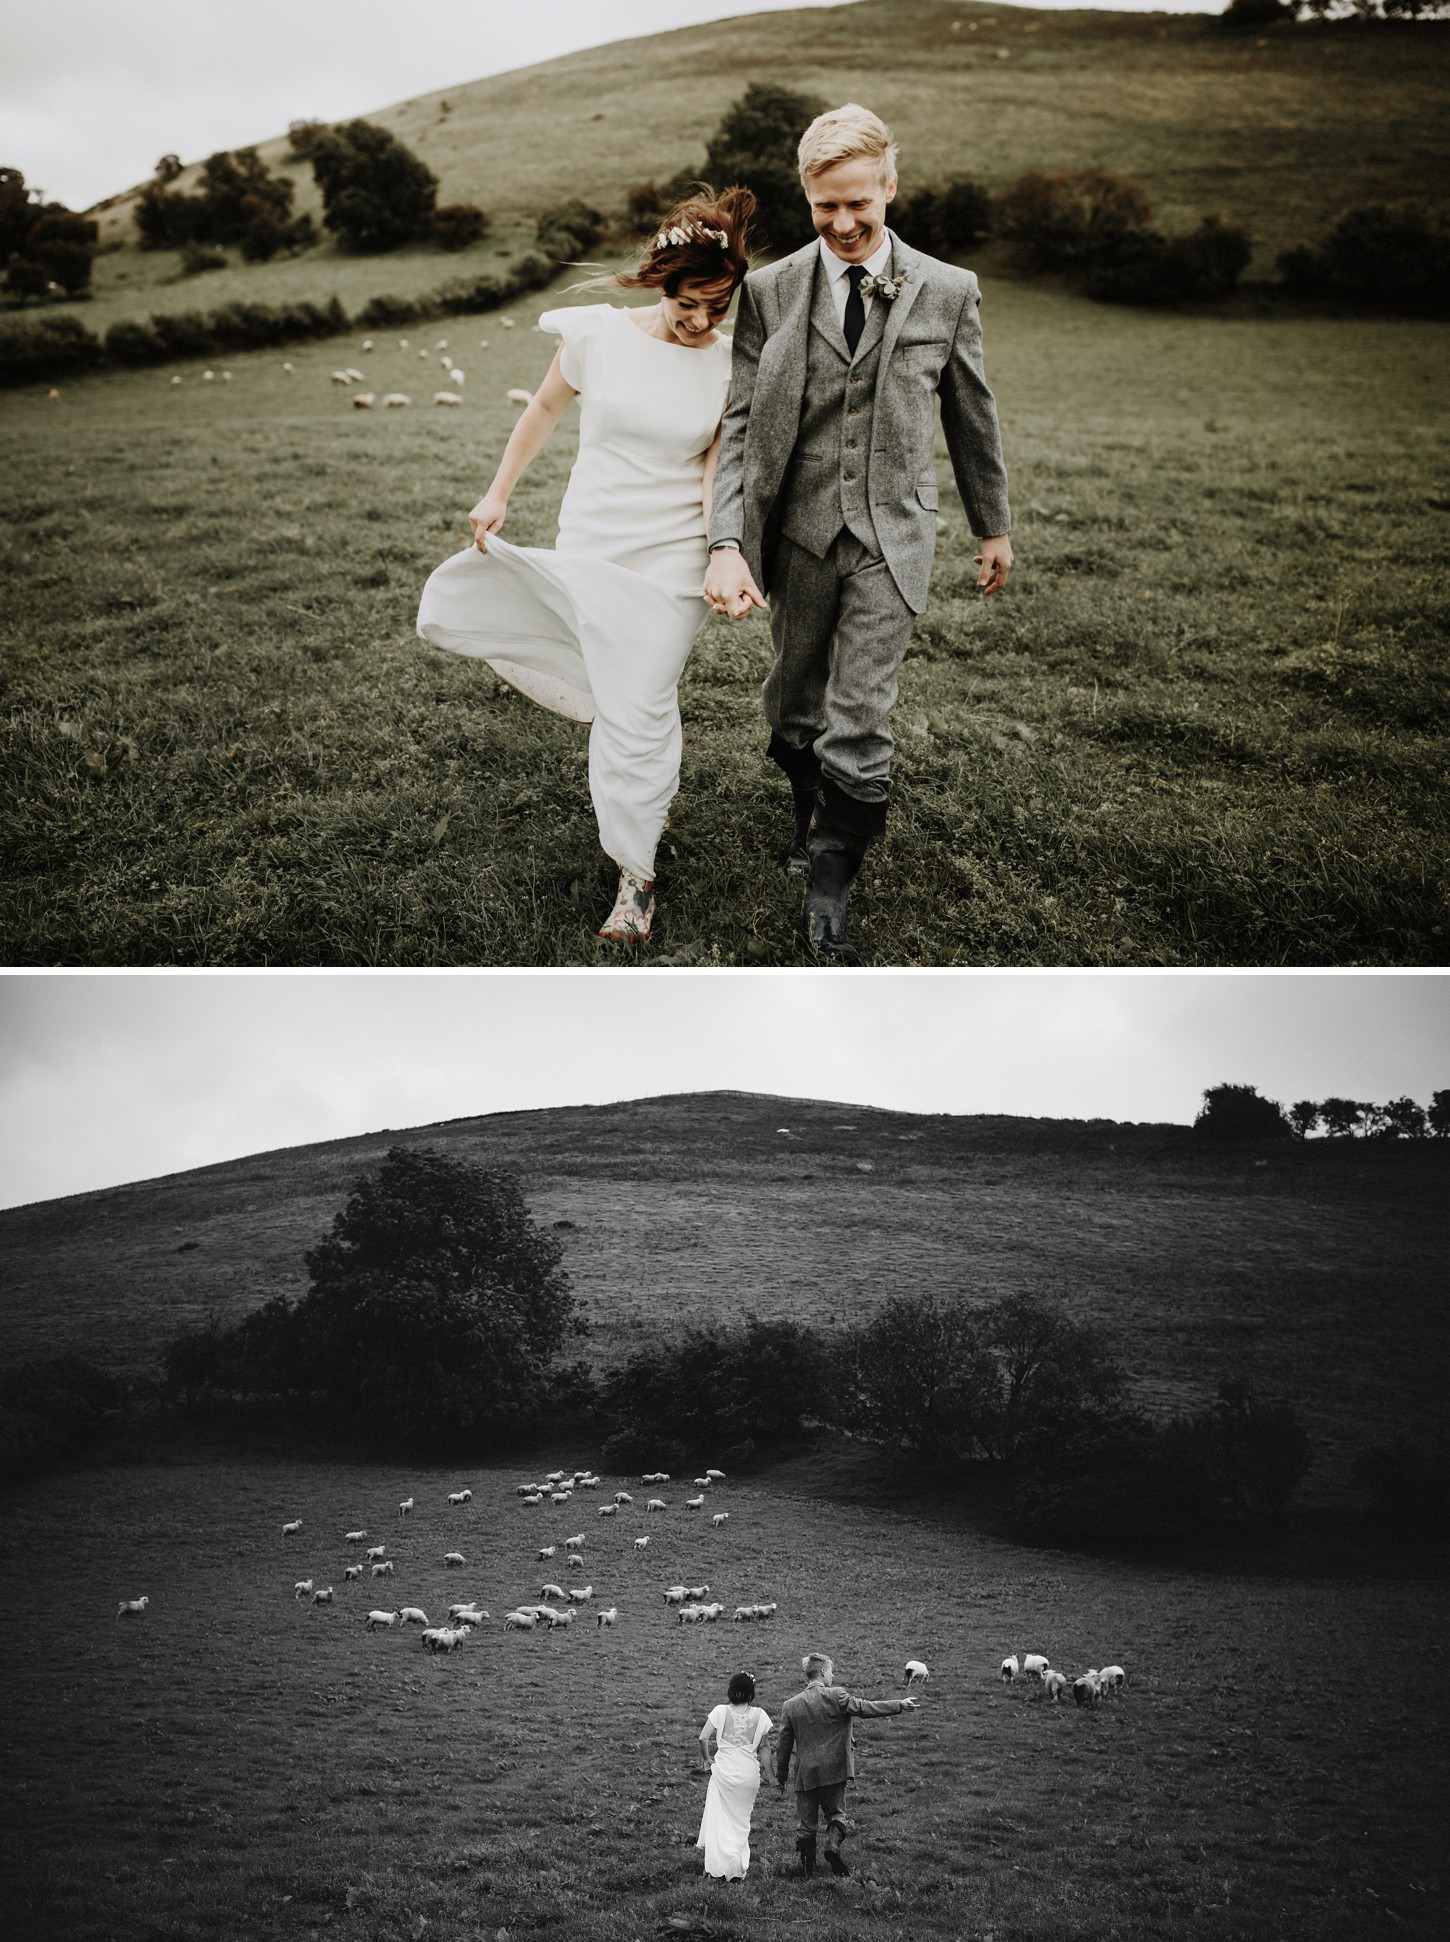 Dolau-Sheep-Farm-Wedding-Wales-United-Kingdom-043